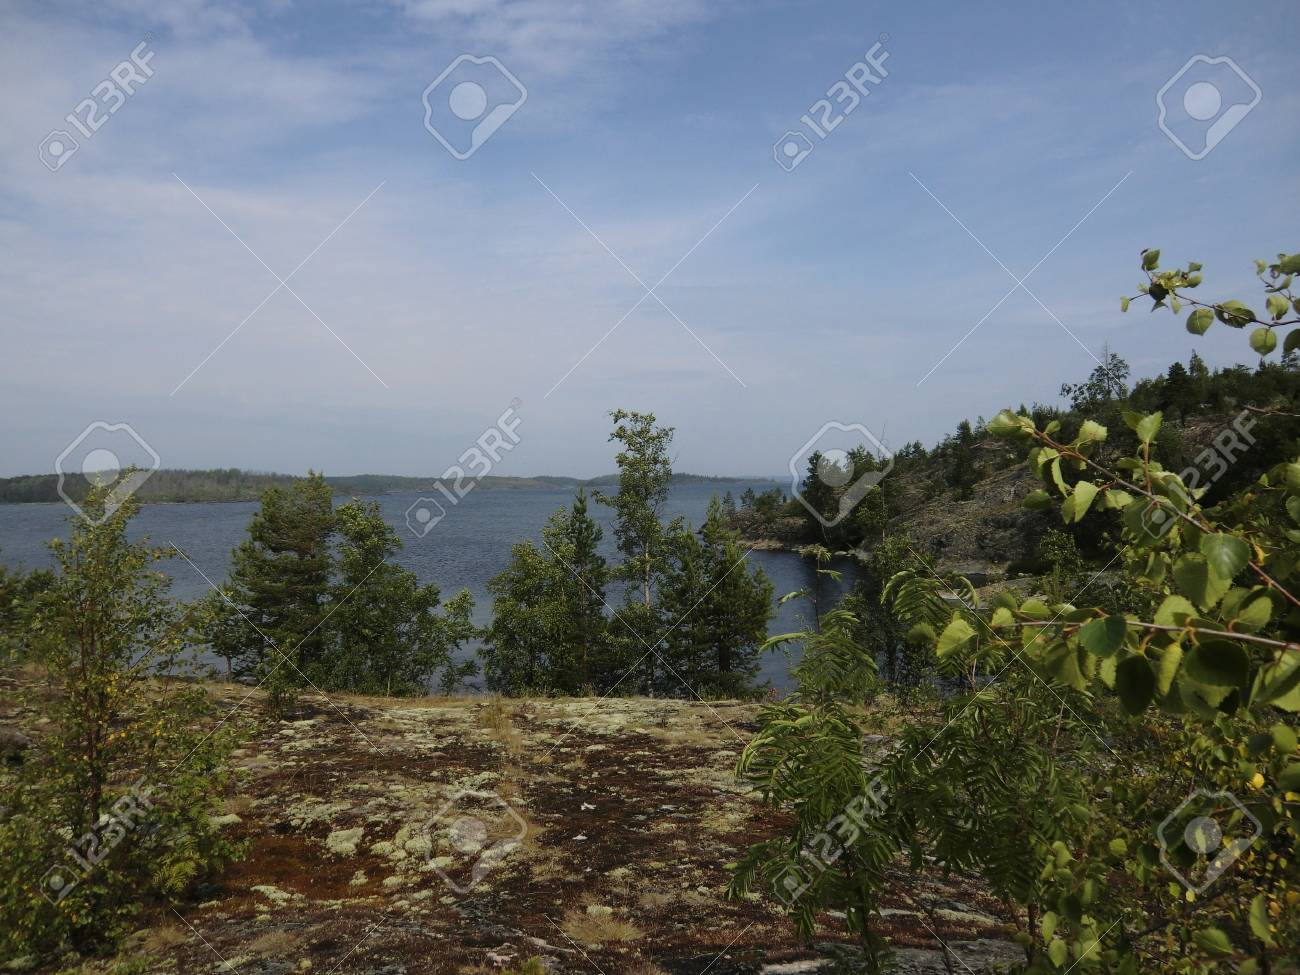 Kind from island on passage on Ladoga lake Stock Photo - 10610609